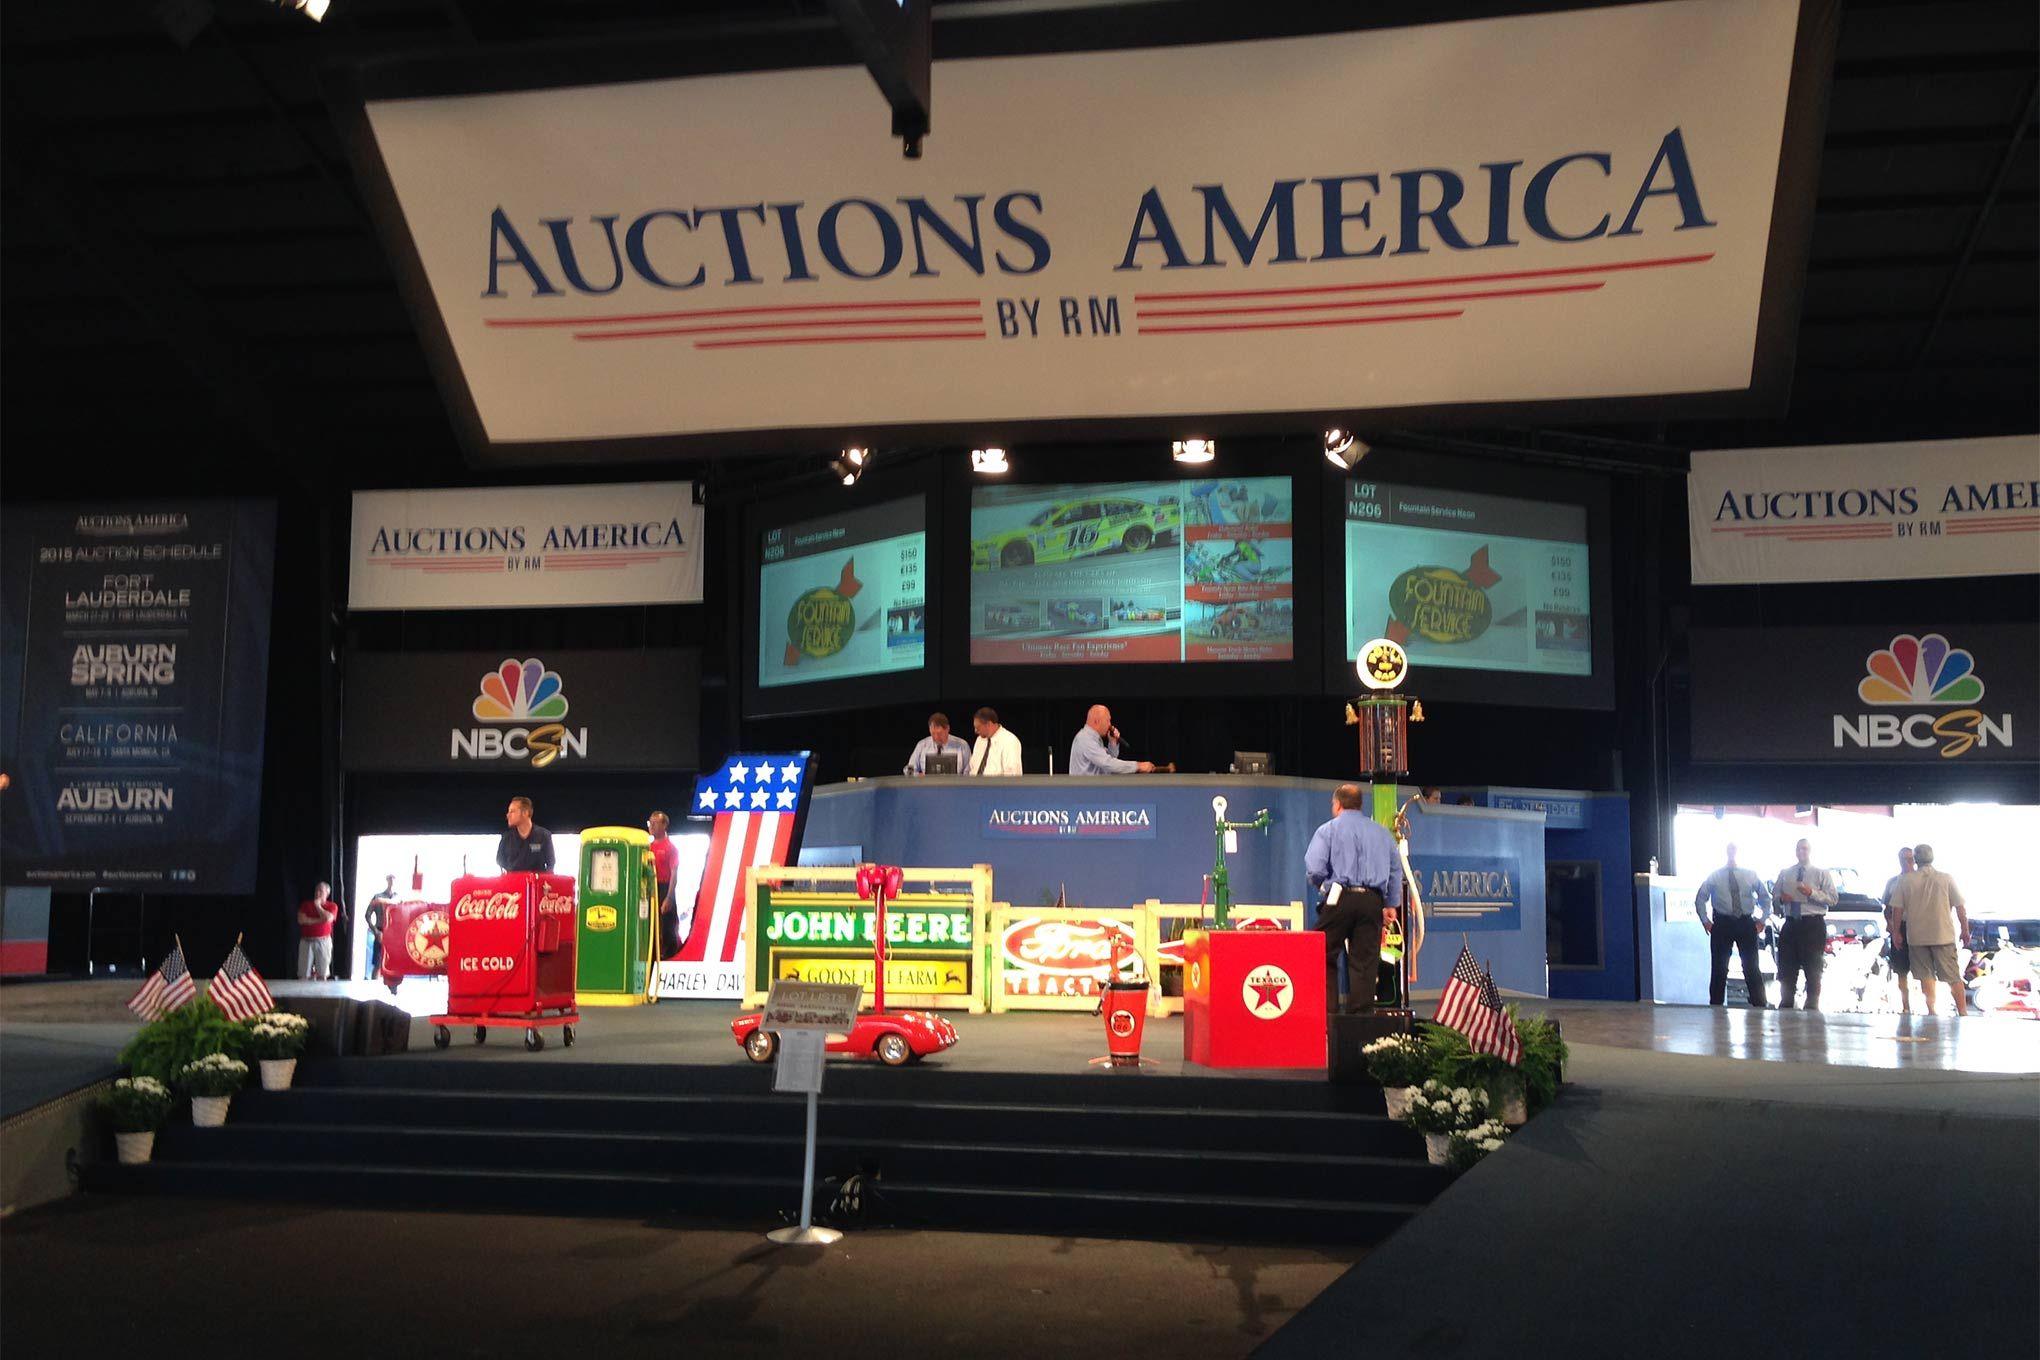 The Shades of the Past Tour began the week in Auburn, IN. We were special VIP guests at the Auction America grounds and got to watch the auction activity all weekend.